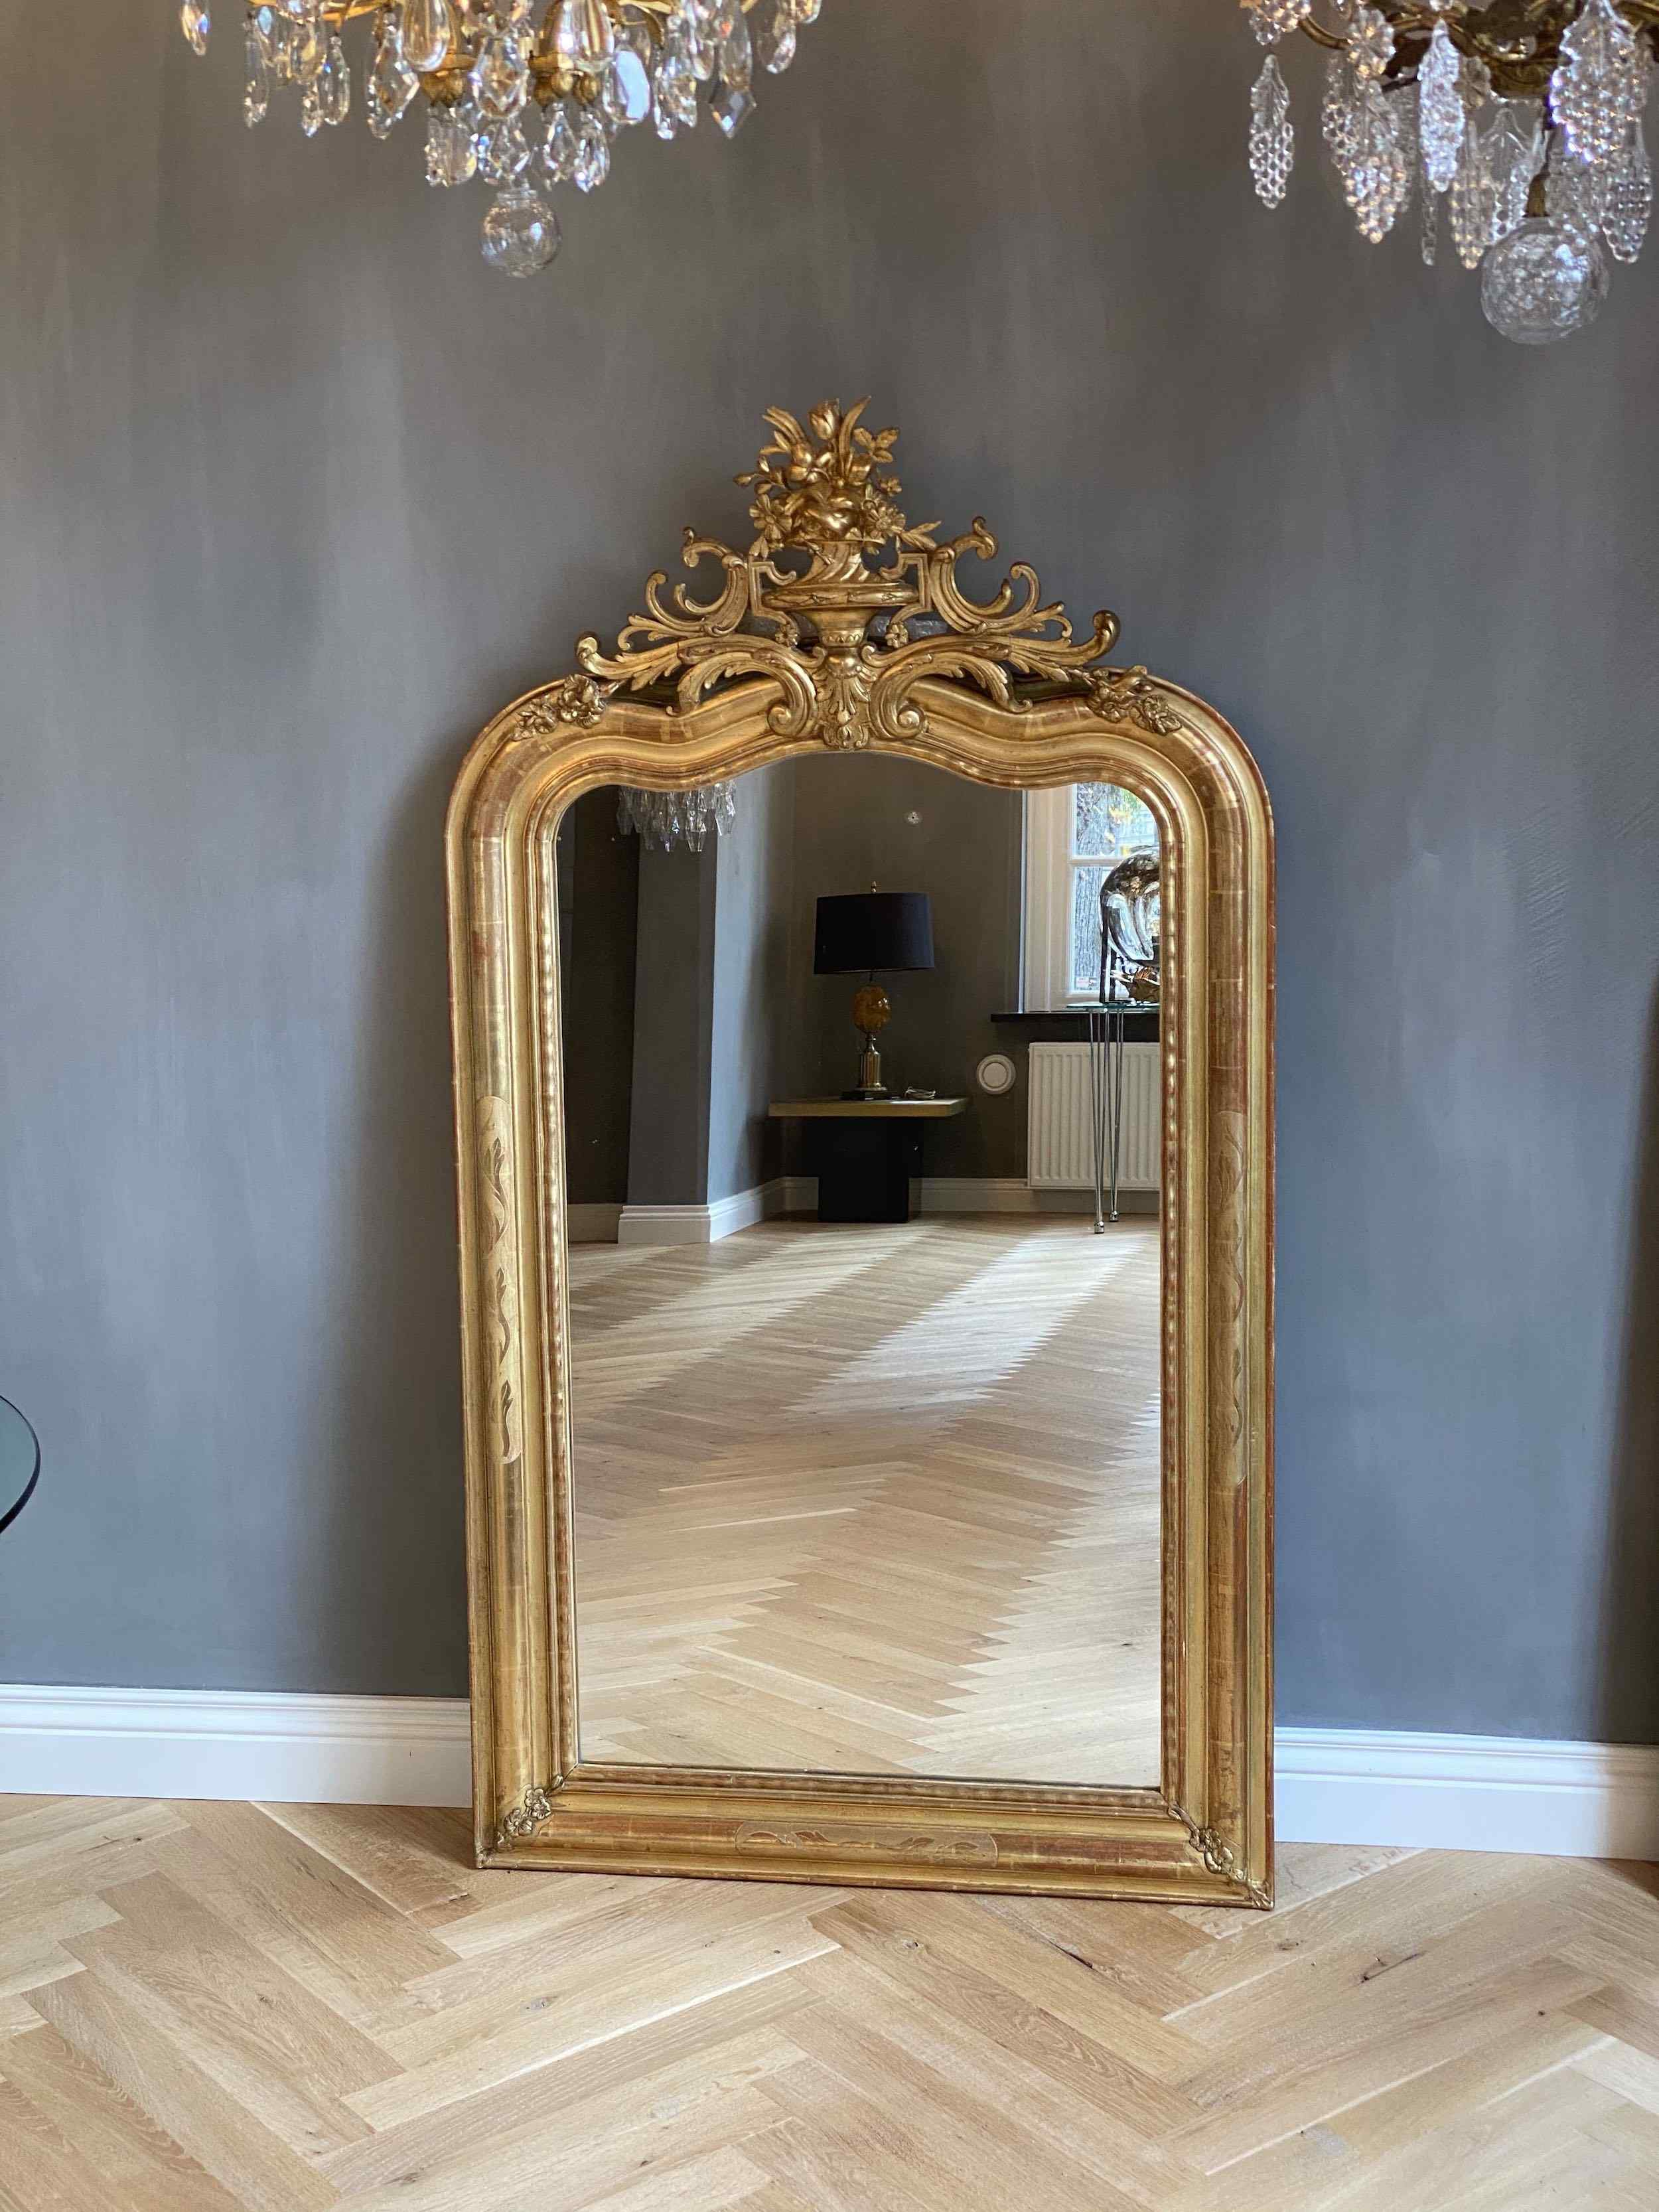 19th c. French mirror with a crest